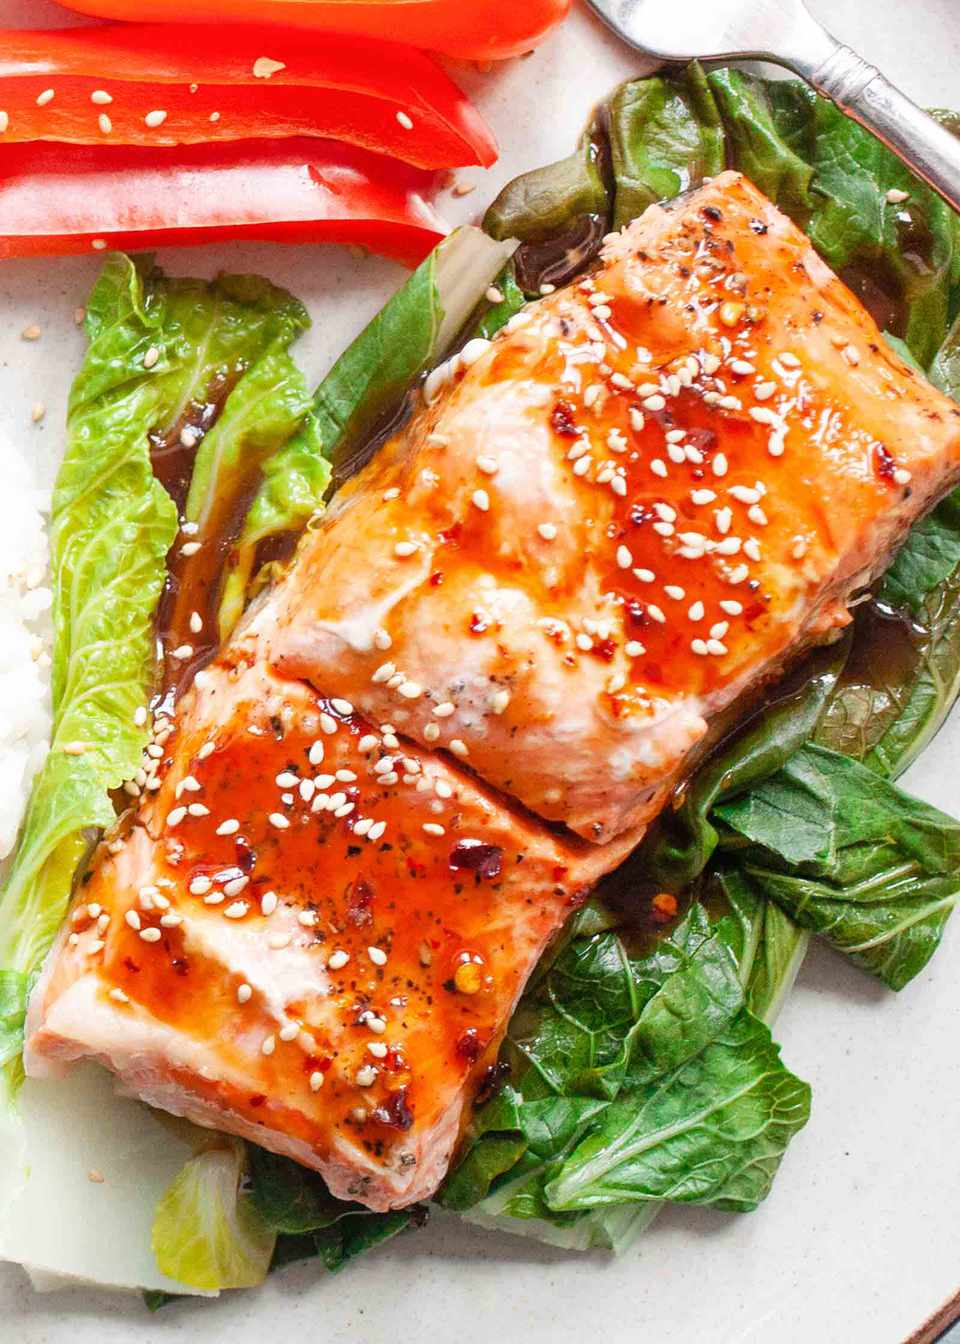 Steamed Ginger Salmon with Ginger Sauce